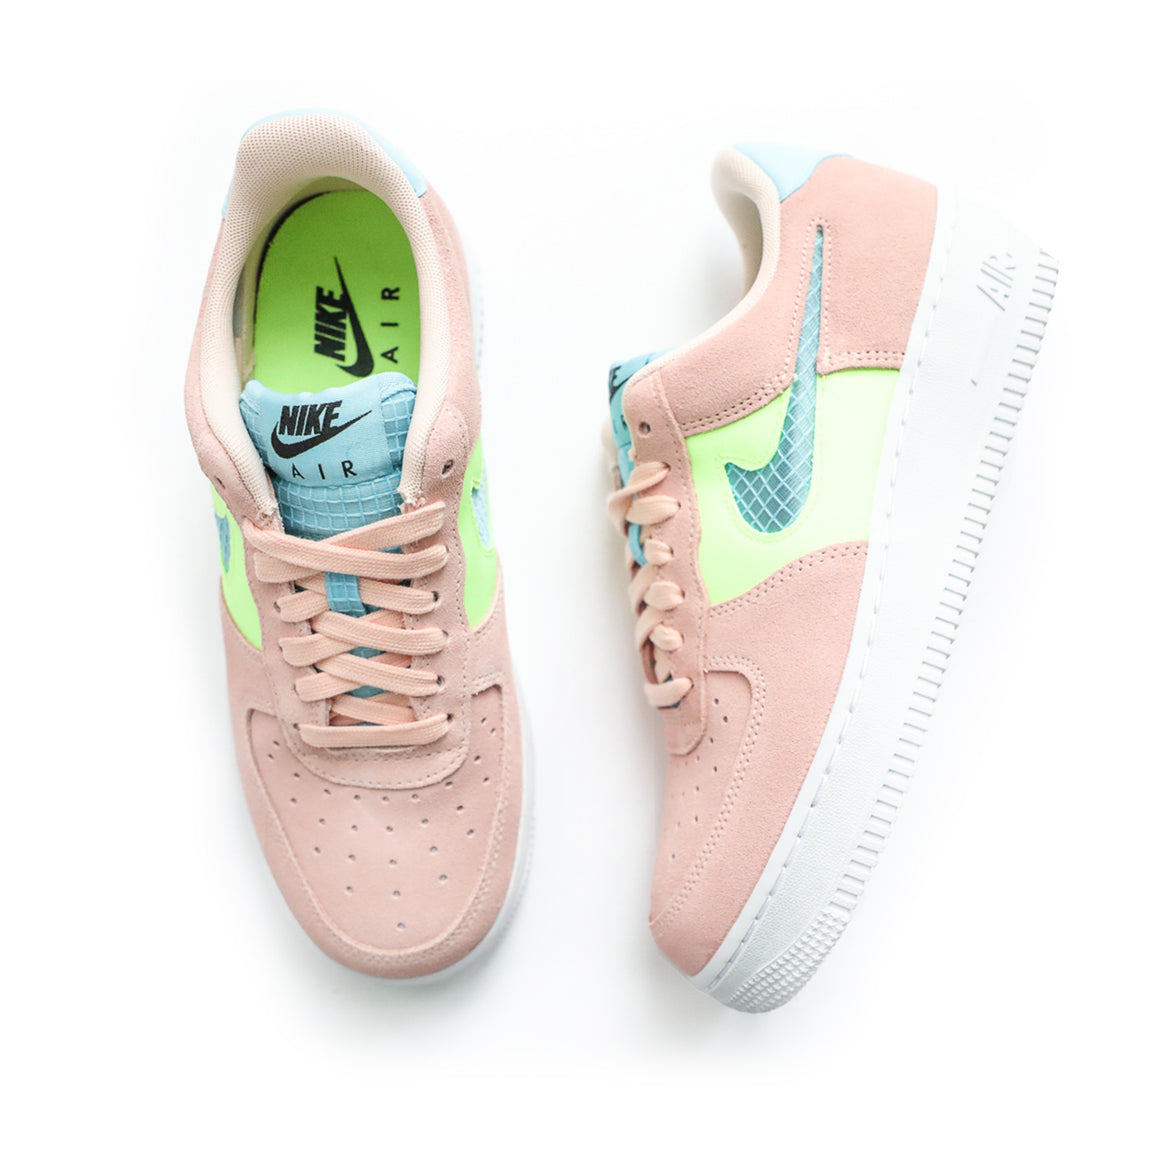 Nike Women's Air Force 1 '07 SE (Washed Coral/Oracle Aqua) - Nike Women's Air Force 1 '07 SE (Washed Coral/Oracle Aqua) -